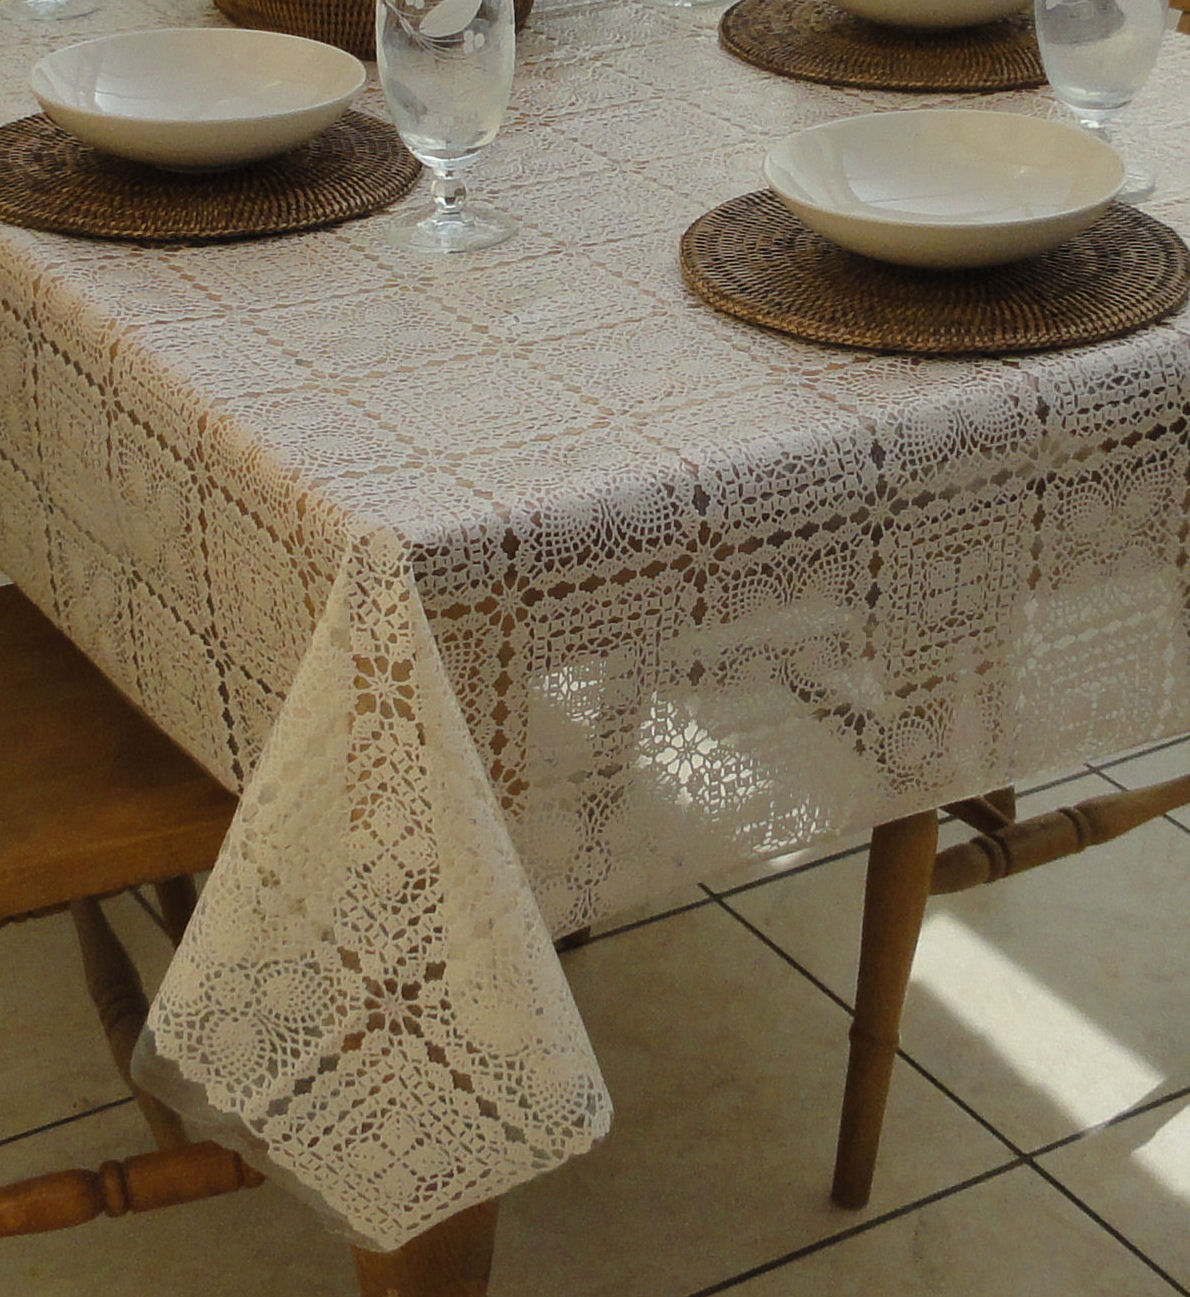 Square Wipe Clean Tablecloth Cream Lace The Tablecloth